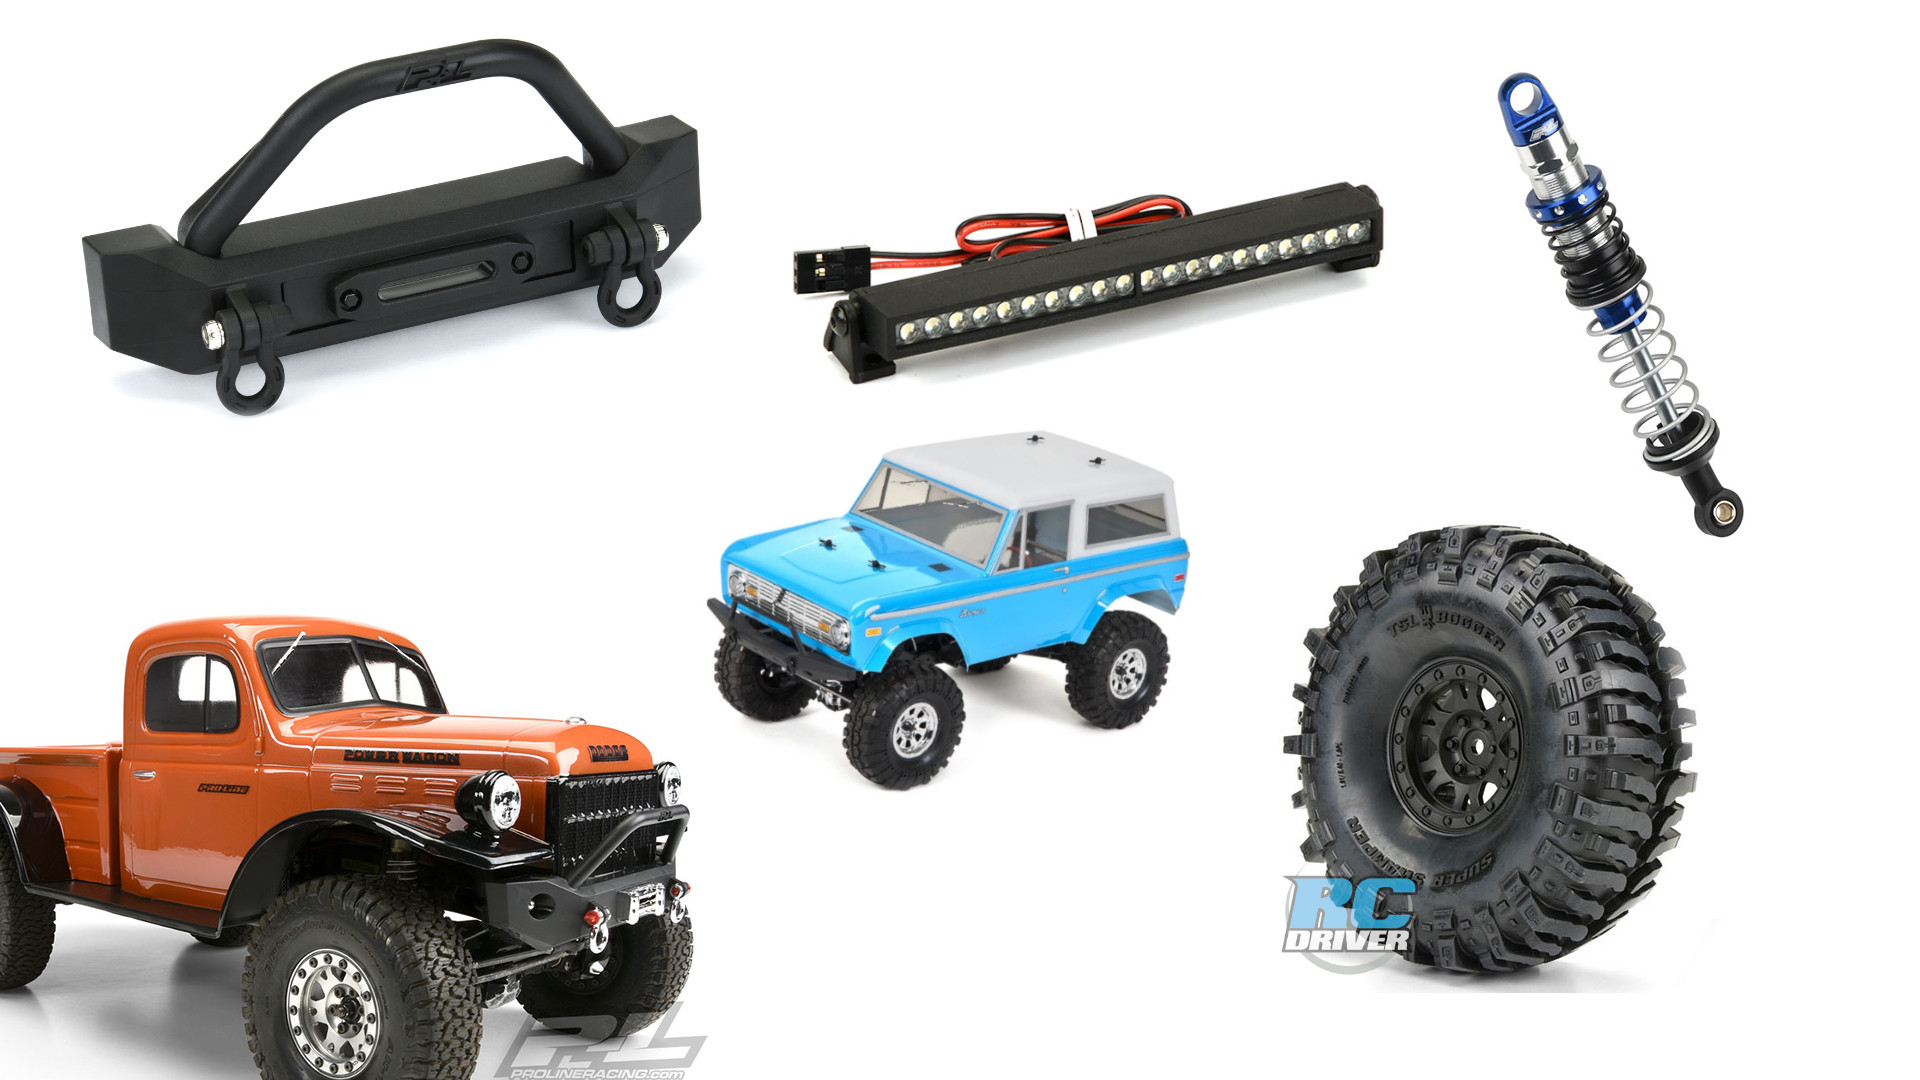 Top 5 Pro-Line Products to upgrade the Vaterra Ascender